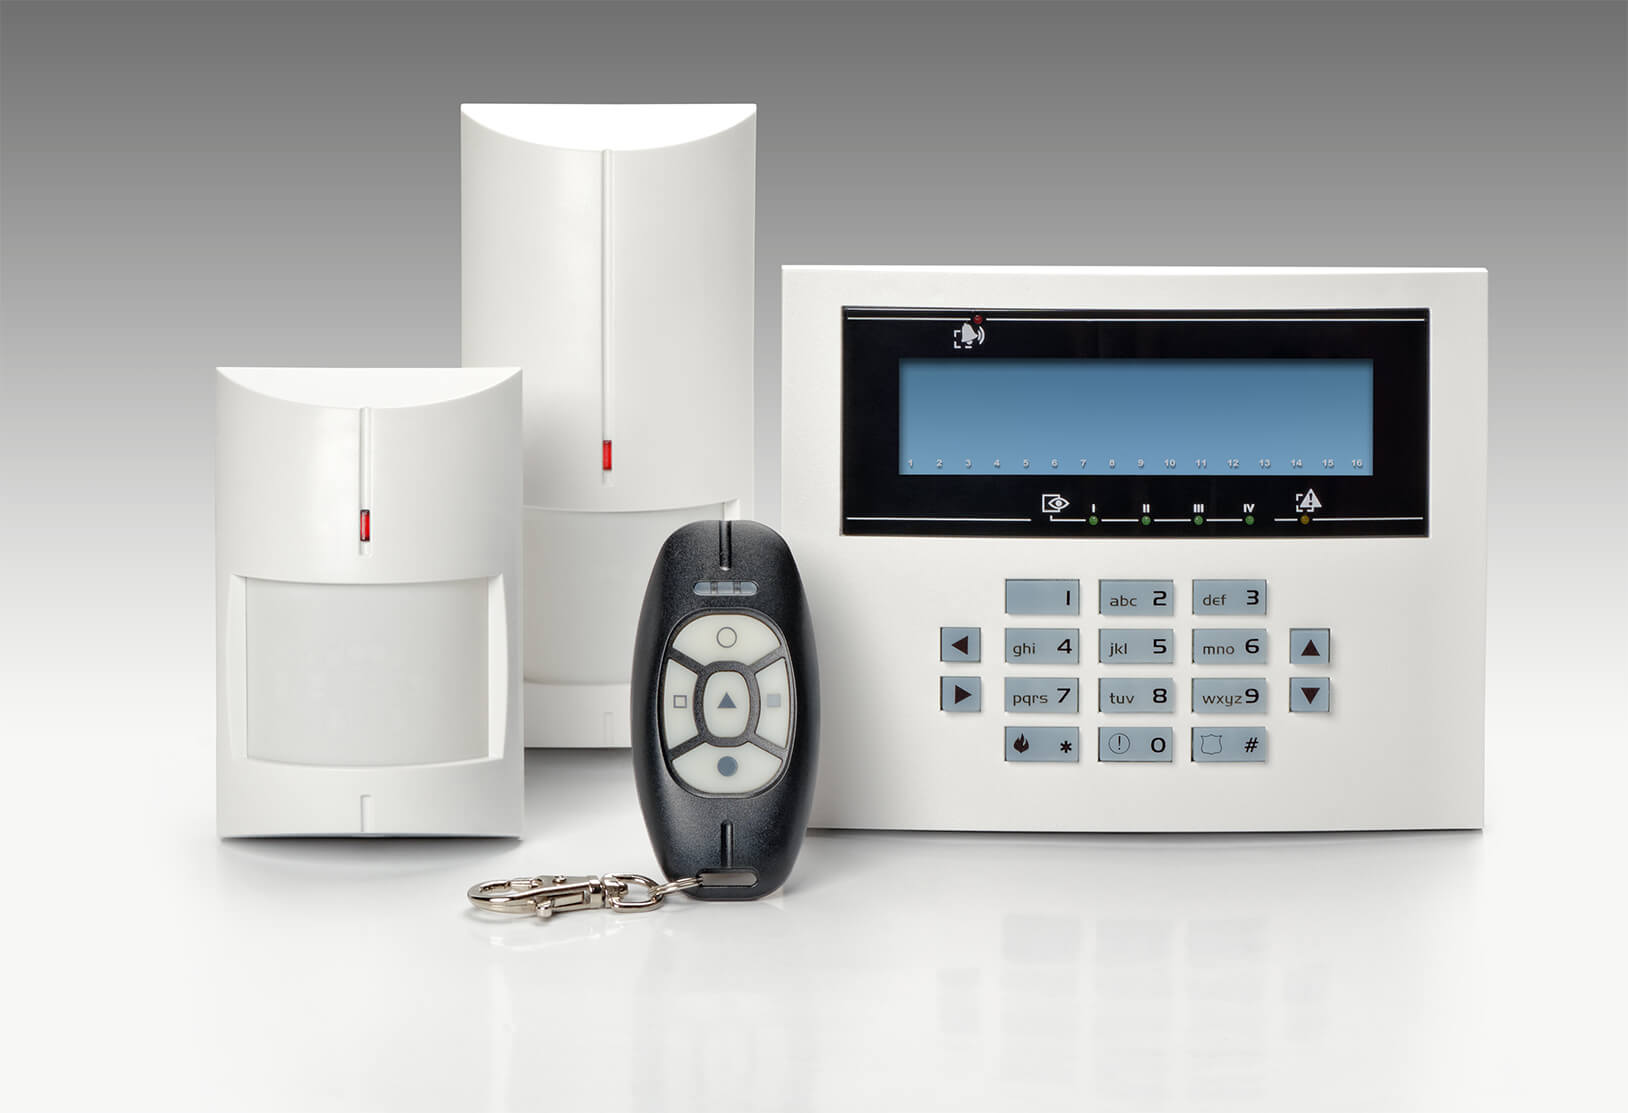 Business & Commercial NSI / NACOSS Approved Burglar Alarms In North East London - Local North East London security company.Call 02078872244 - Dedicated to Safety & Security. Companies, shops,hotels  ..